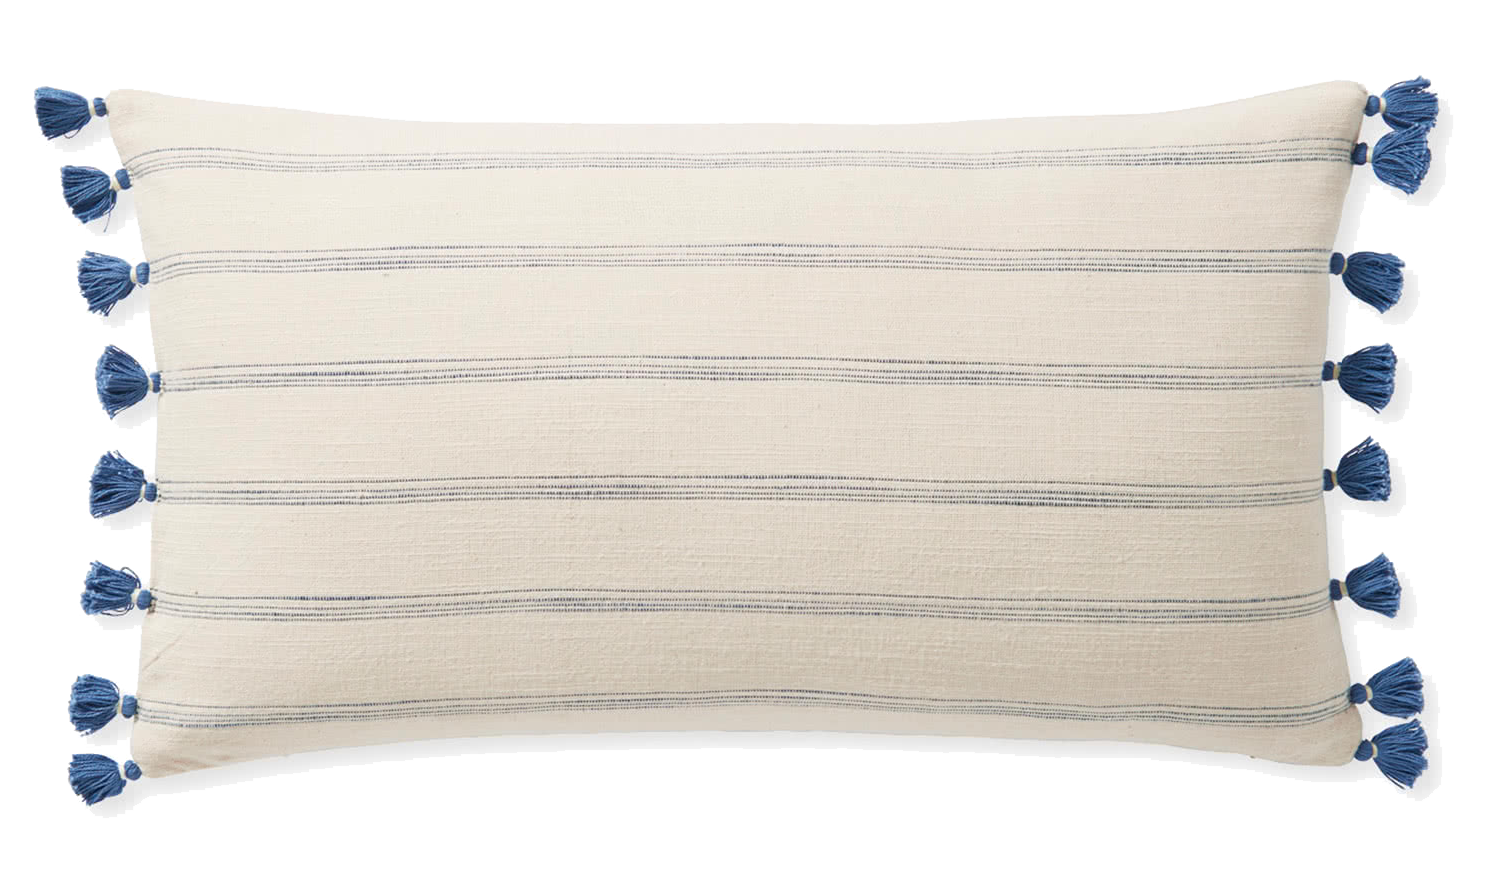 Dec_Pillow_Alsworth_Washed_Indigo_MV_0266_Crop_SH.png